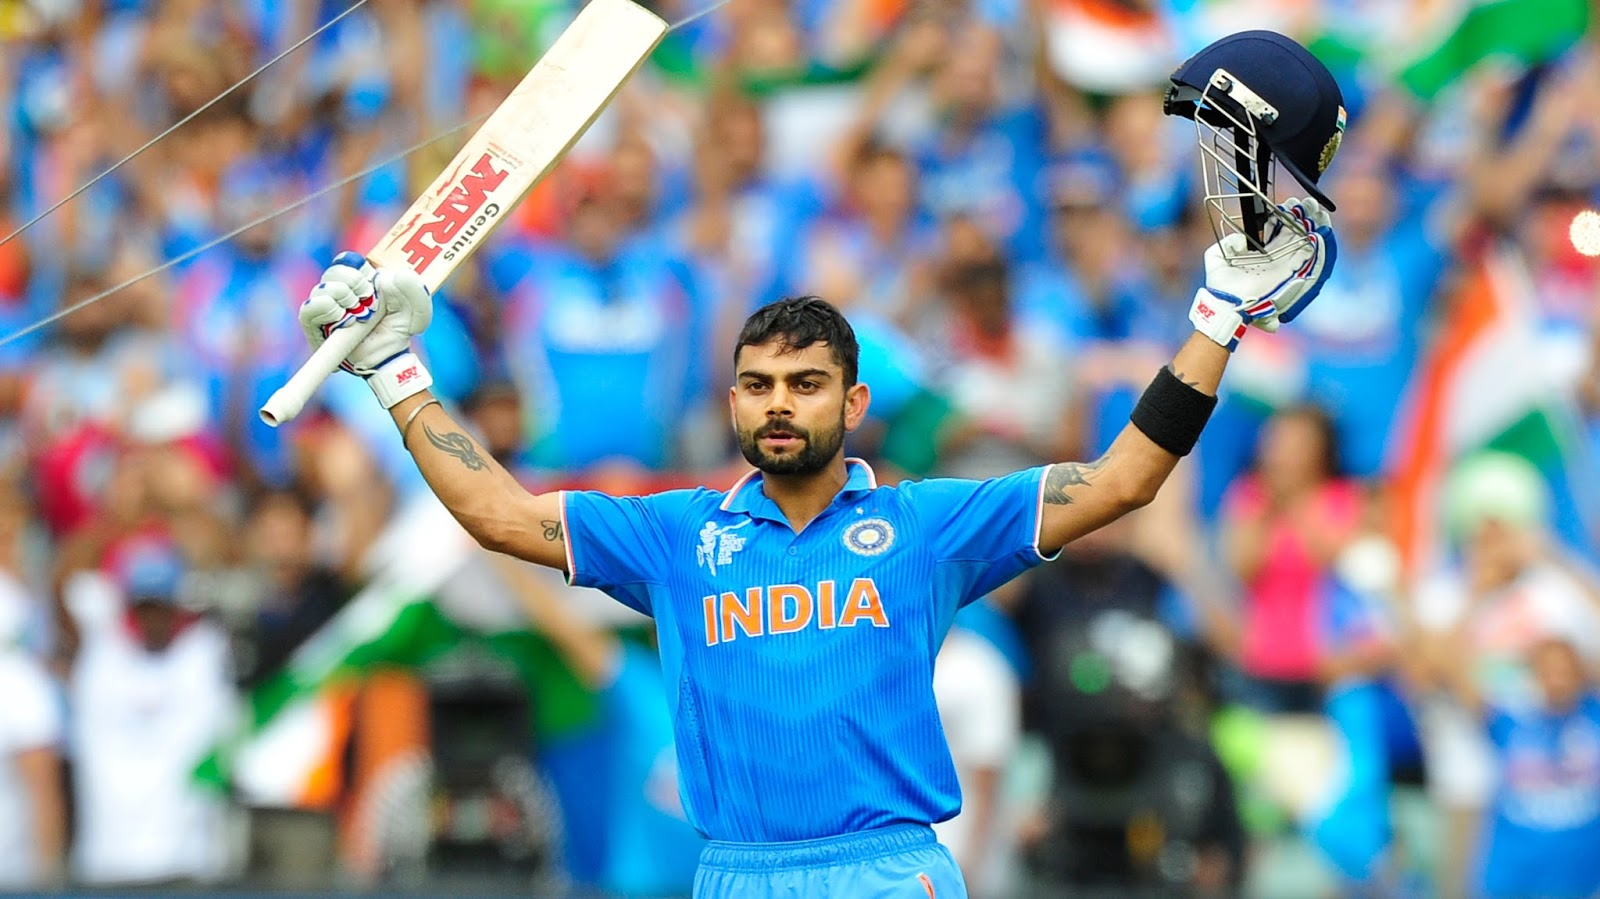 A HD Wallpapers: Virat Kohli HD Wallpapers 2017 | Virat Latest Android Images